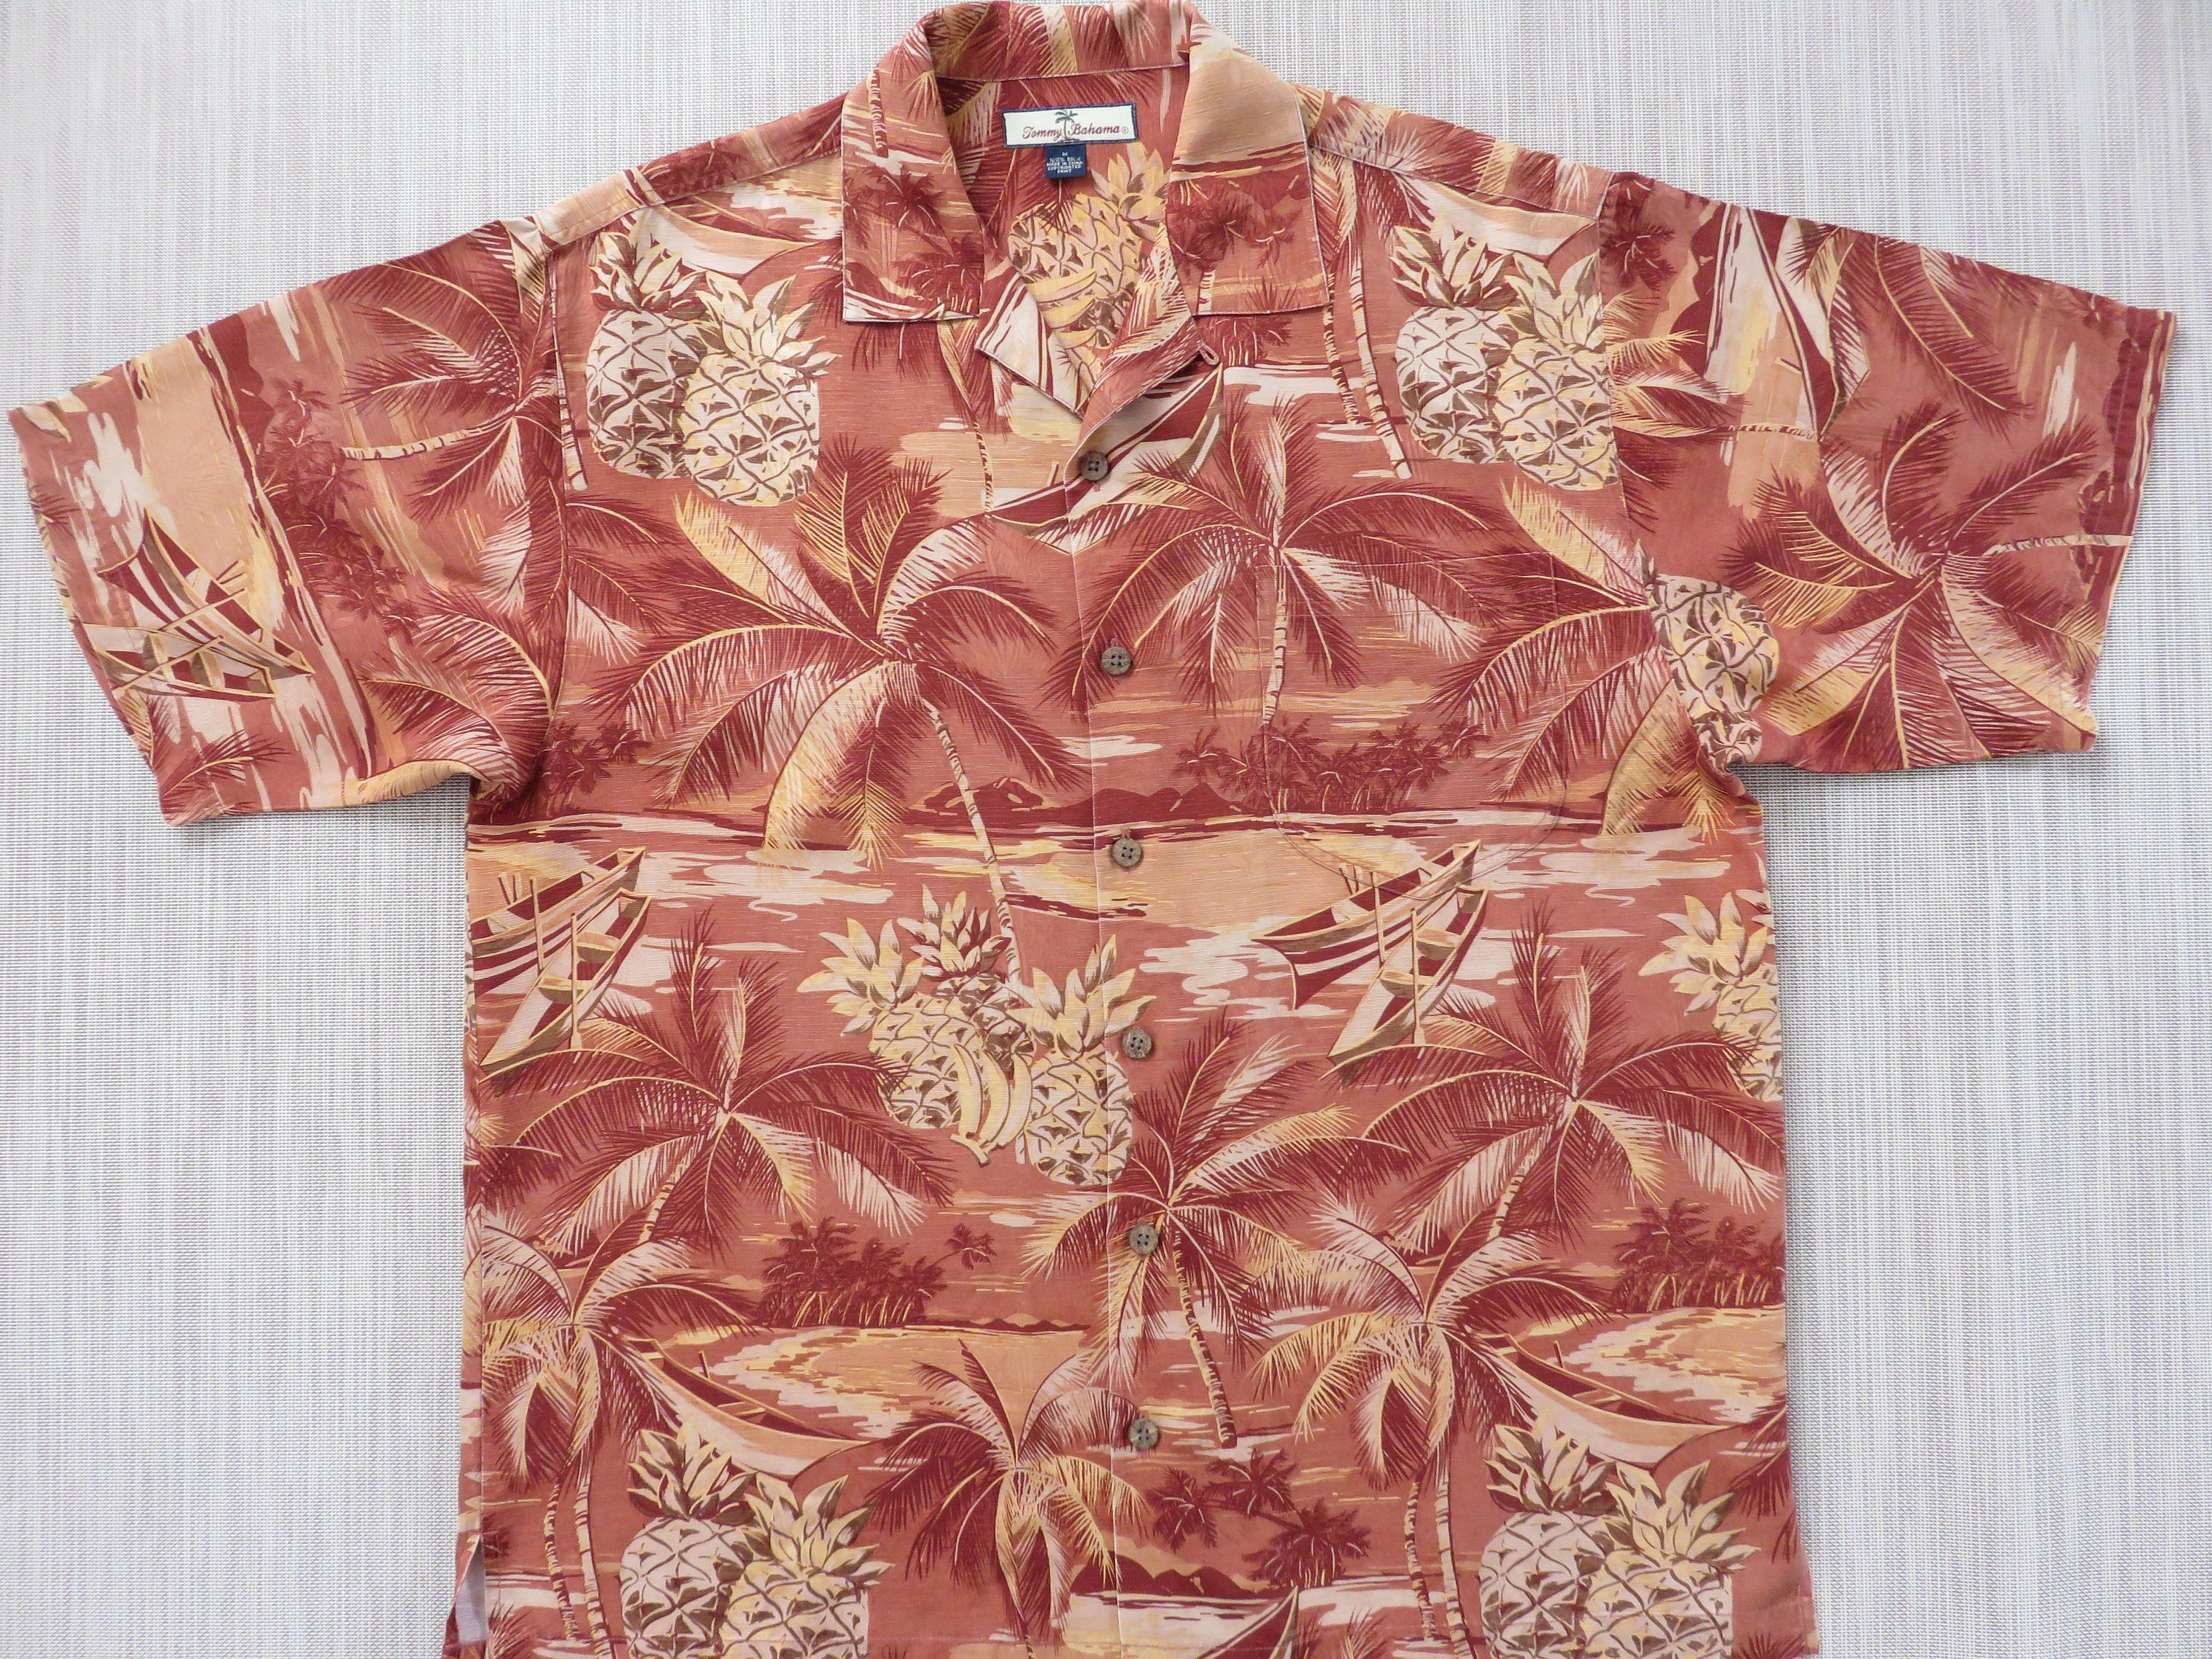 680ba470 TOMMY BAHAMA Shirt Hawaiian Shirt Copyrighted Tropical Island Pineapple  Express Aloha Shirt Relax Fit 100% Silk - M - Oahu Lew's Shirt Shack by ...